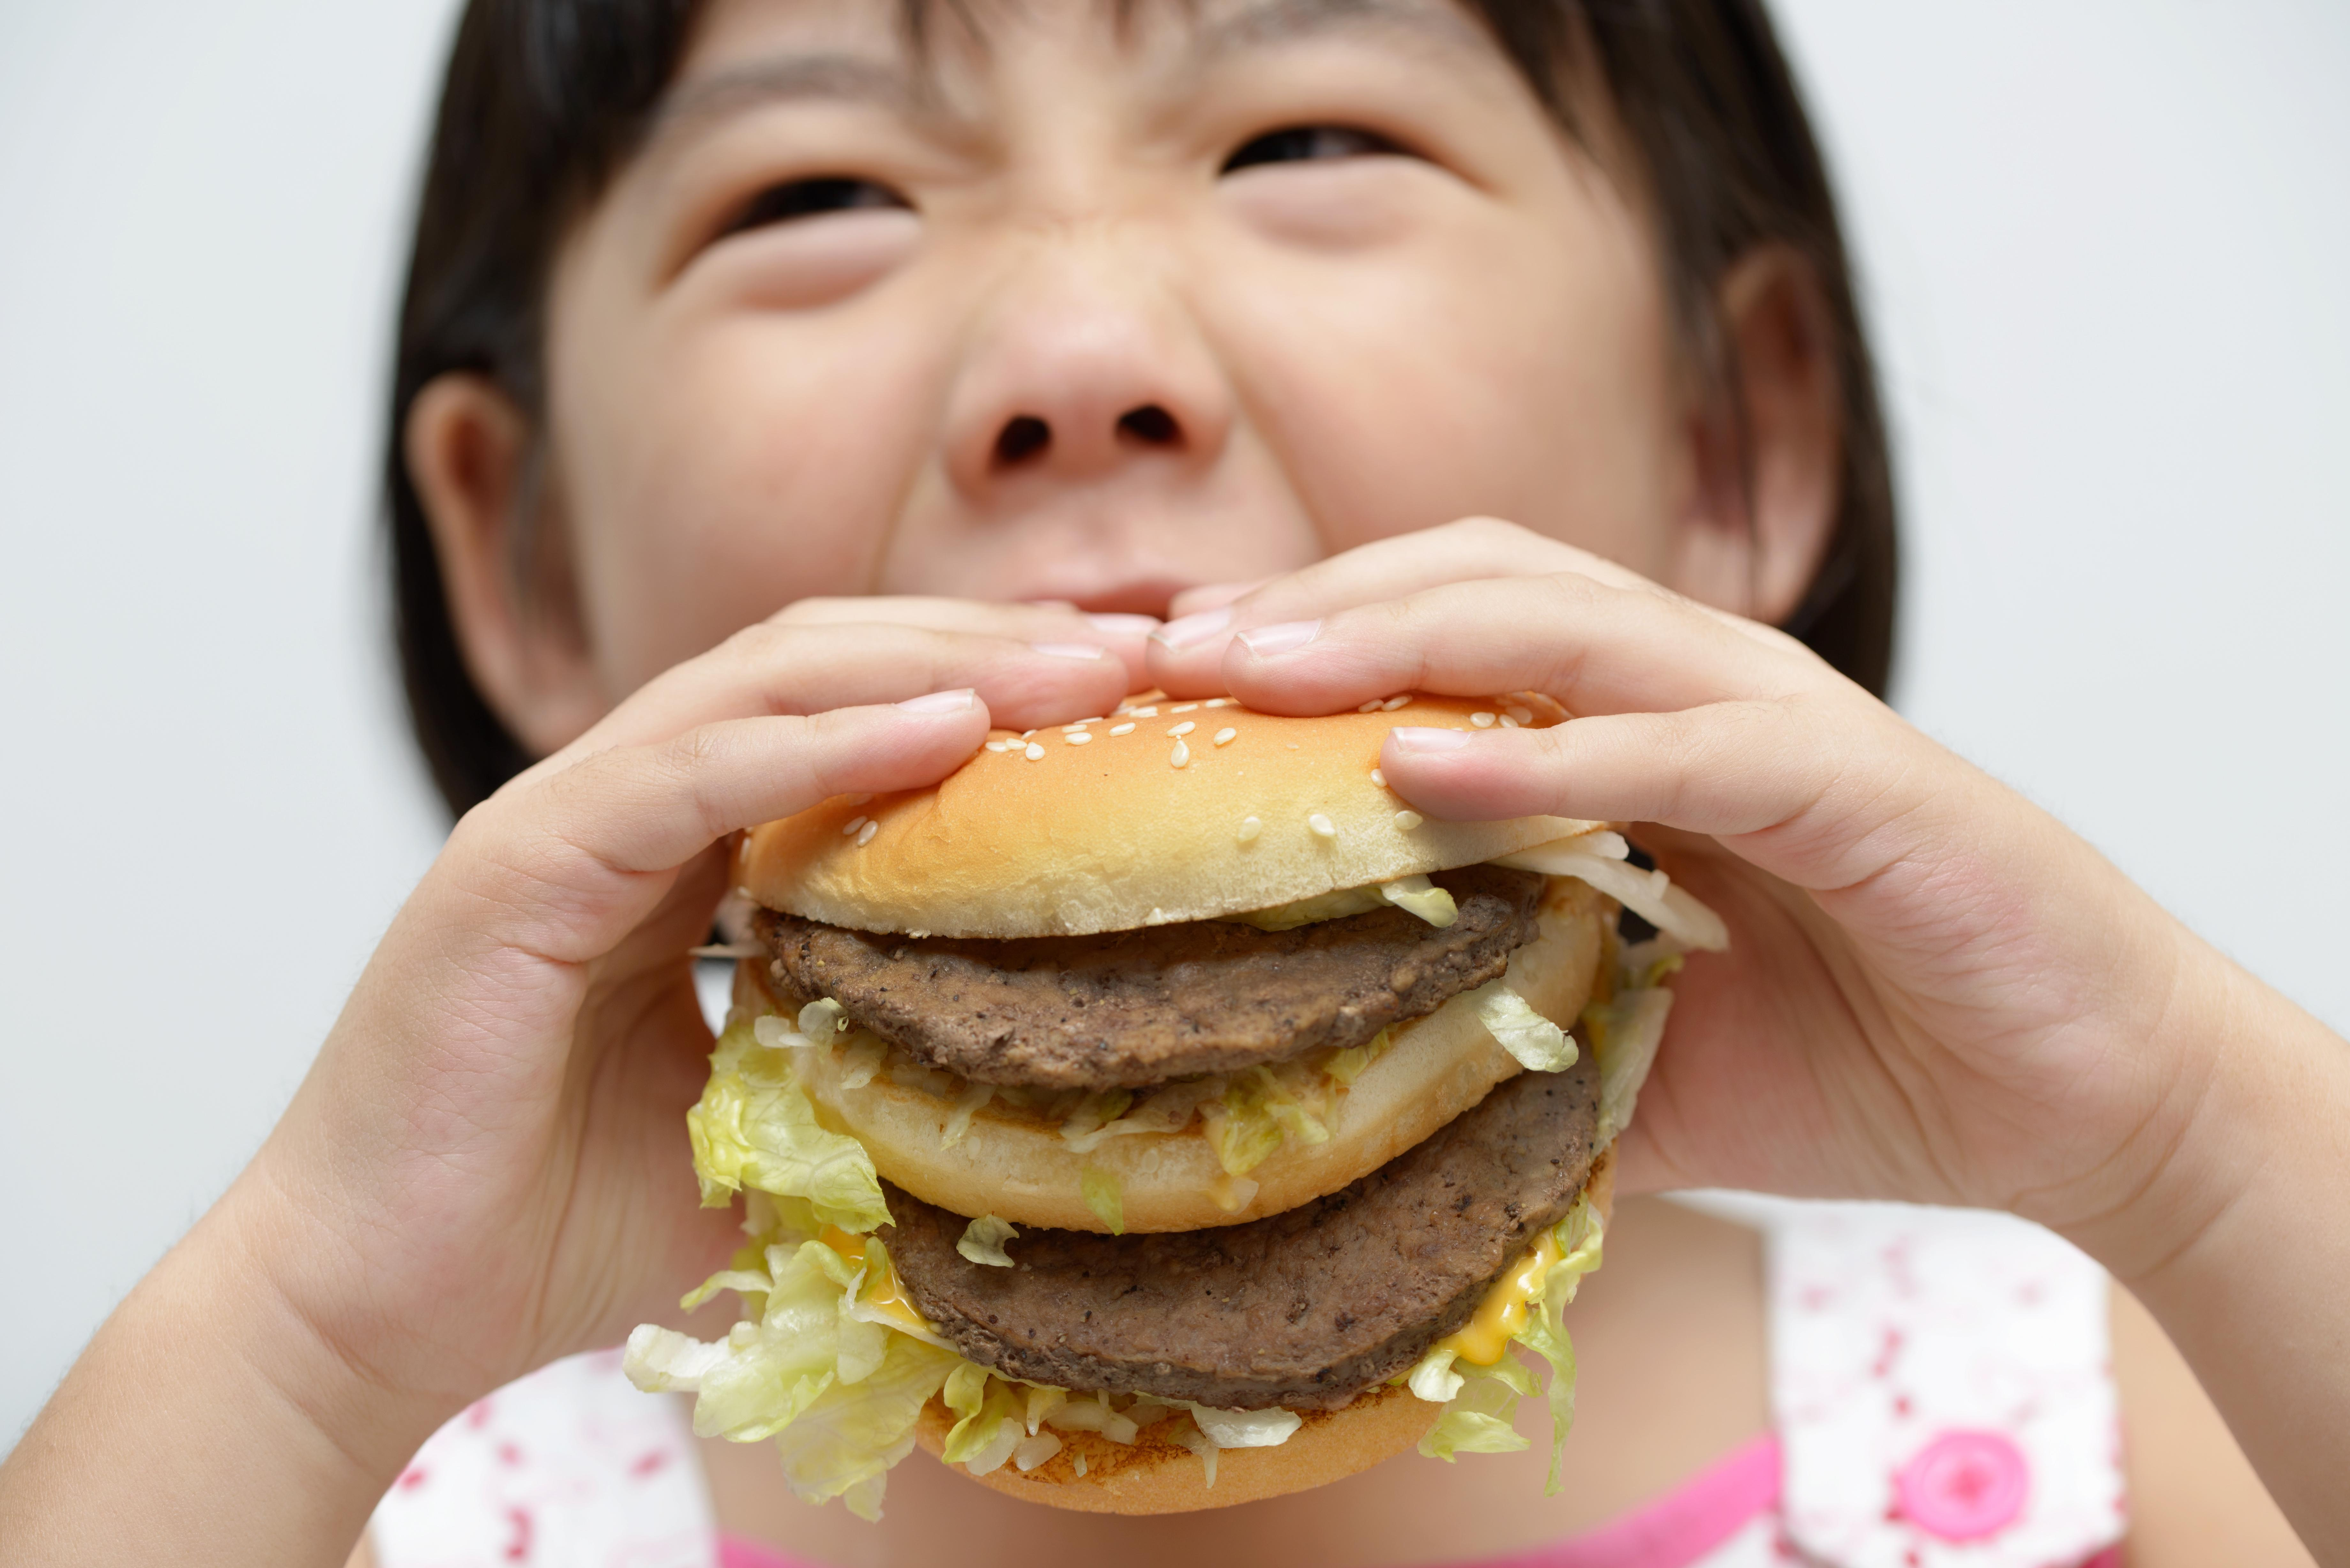 should kids consume junk food at school For children, who do not always understand the health consequences of their  eating  energy and focus are especially crucial for school-age children   according to this study, kids who ate fast food were more likely to consume a  higher.